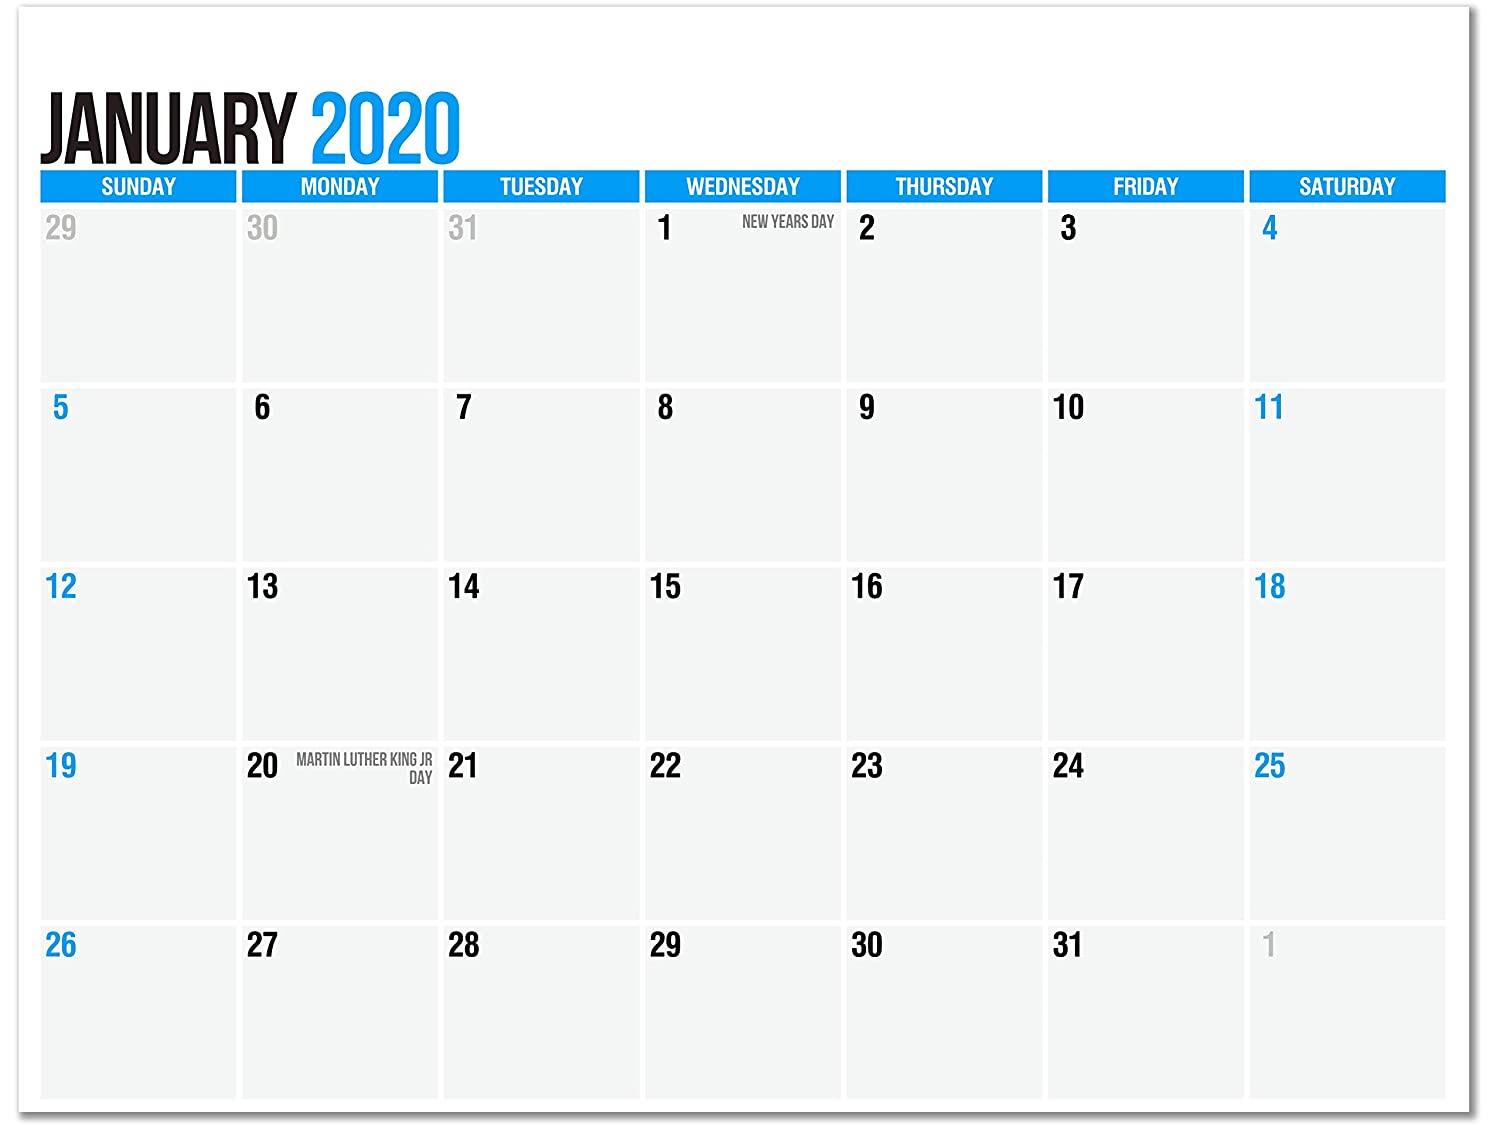 SplightPrints 2020 Magnetic Calendar Pad for Refrigerator, January 2020 to December 2020, 11 x 8.5 Inches, Thick Monthly Calendar Paper, Strong Fridge Magnets (12 Months)